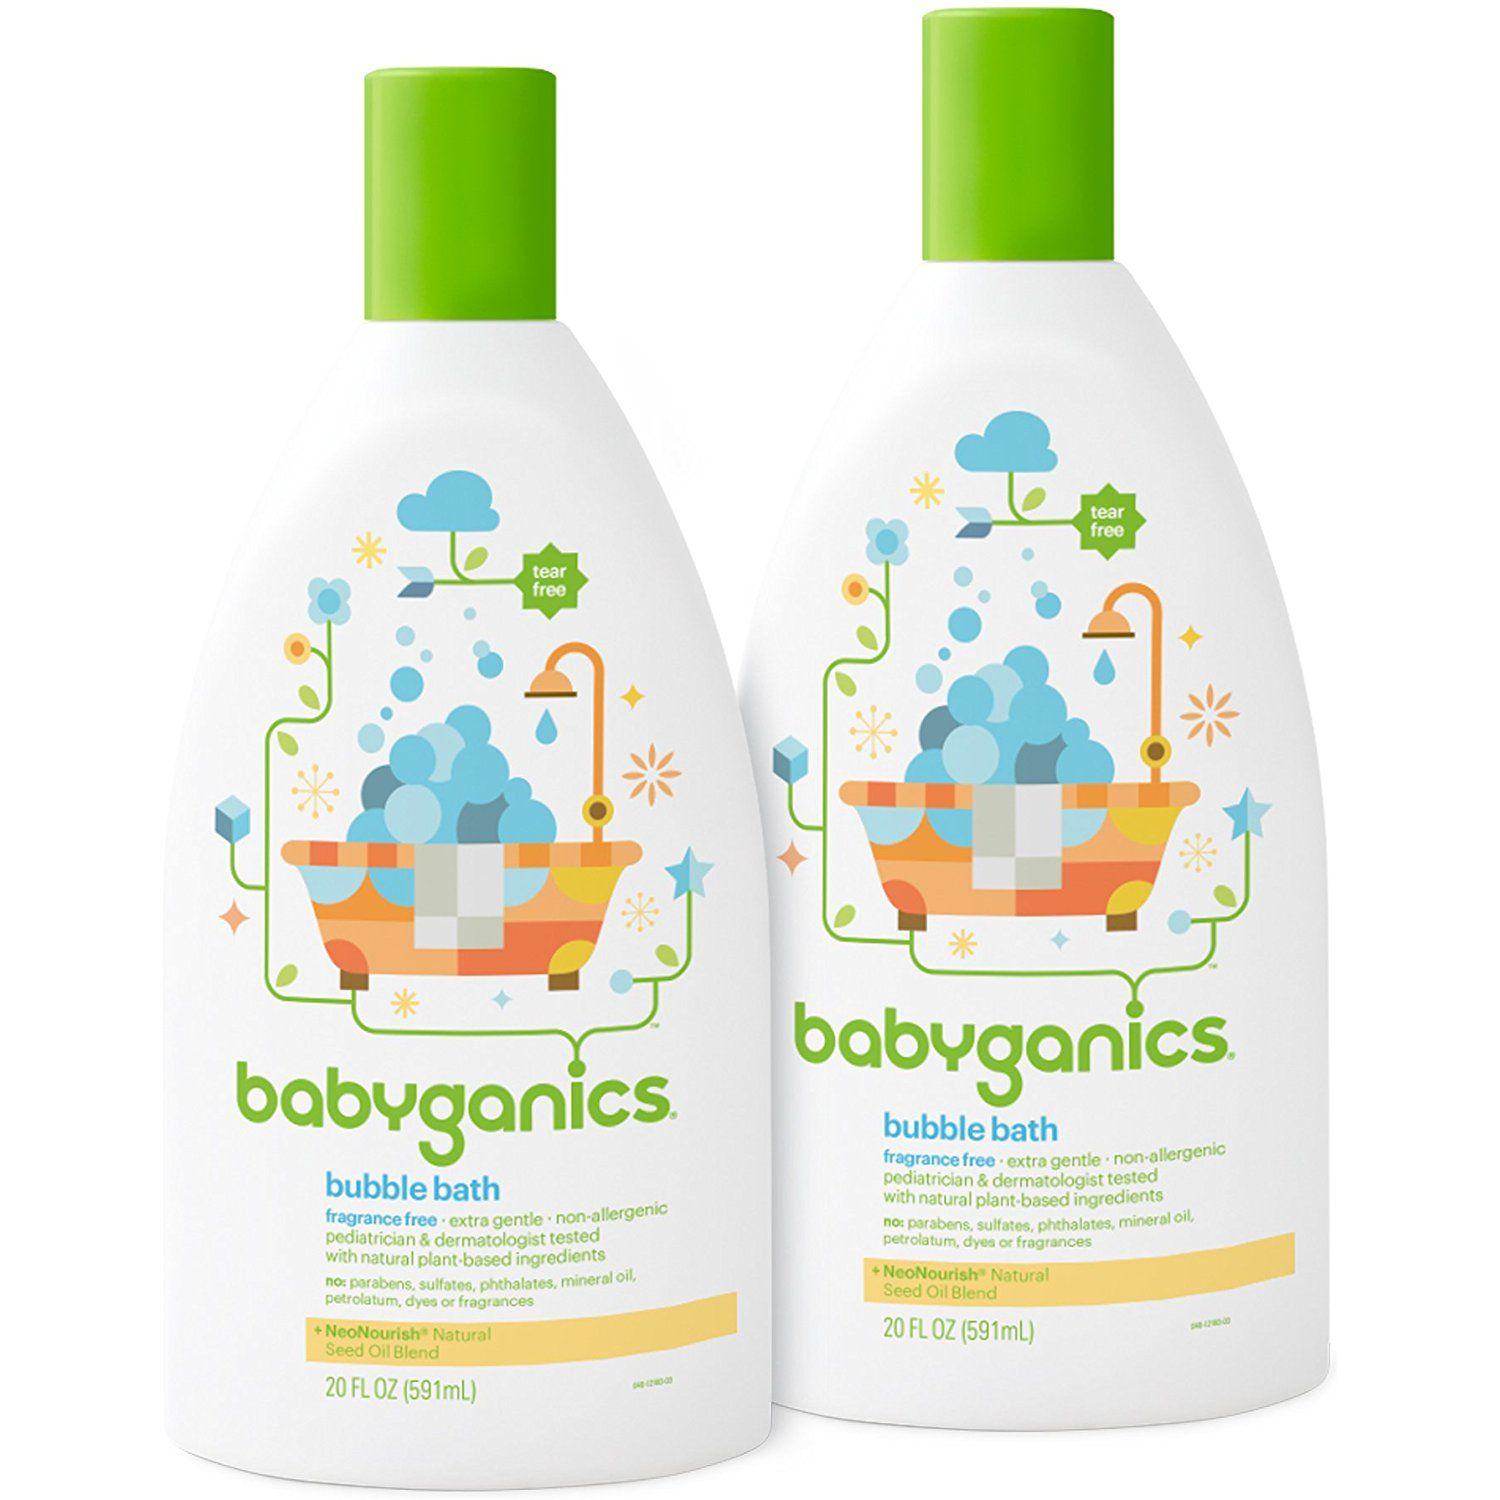 Babyganics Baby Bubble Bath Fragrance Free 20oz Bottle Pack Of